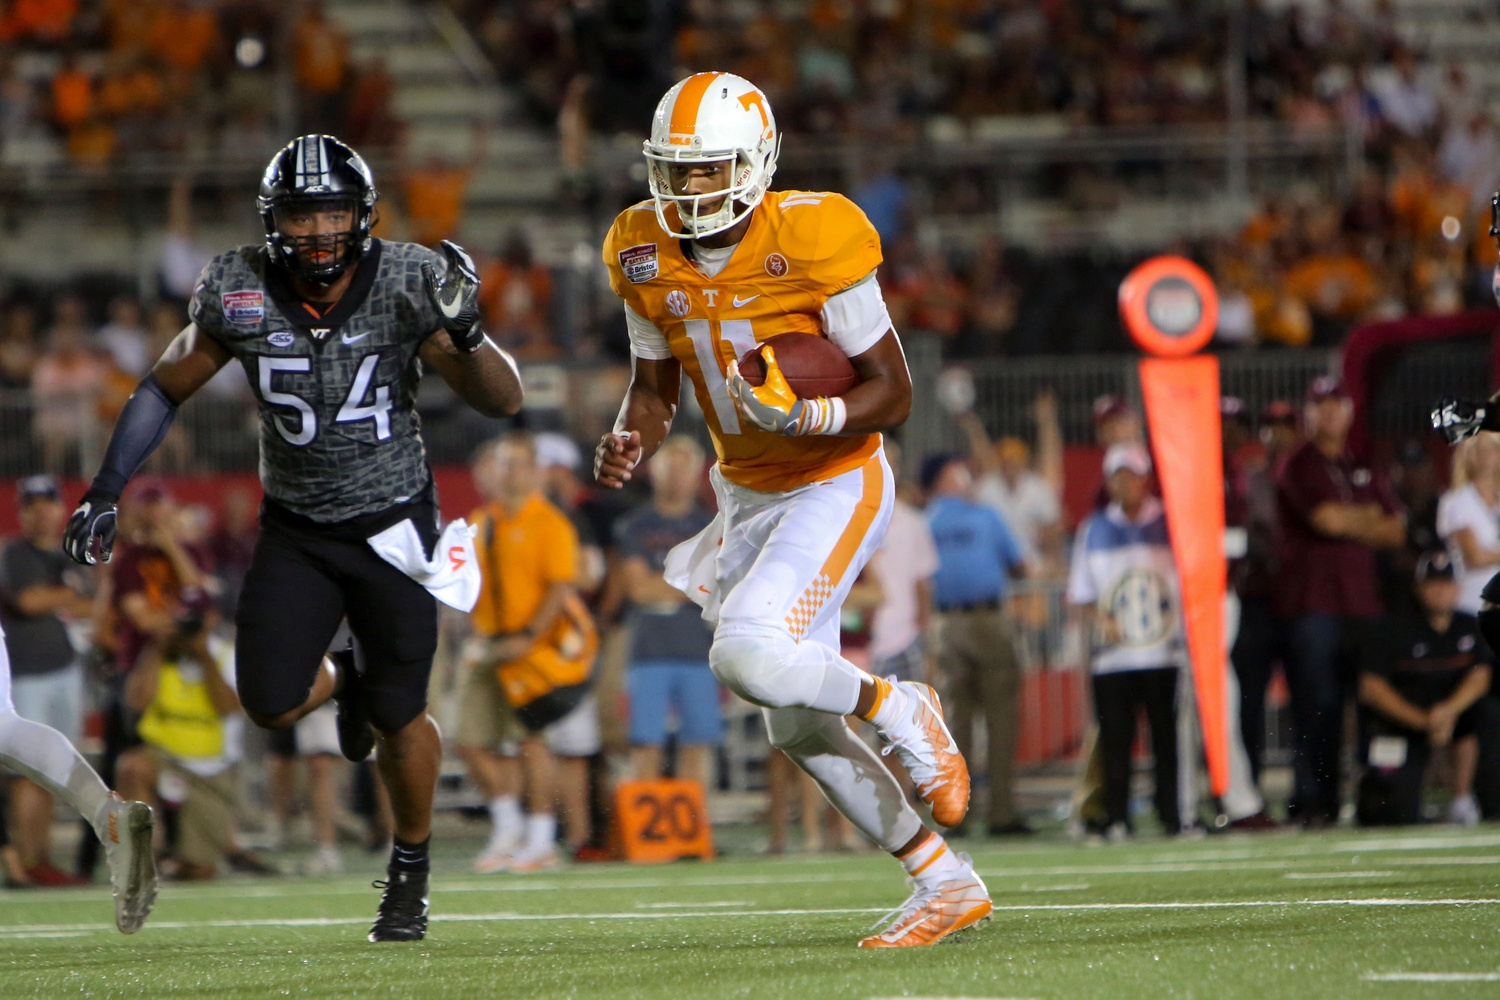 Sep 10, 2016; Bristol, TN, USA; Tennessee Volunteers quarterback Joshua Dobbs (11) runs the ball against the Virginia Tech Hokies during the second half at Bristol Motor Speedway. Tennessee won 45 to 24. Mandatory Credit: Randy Sartin-USA TODAY Sports